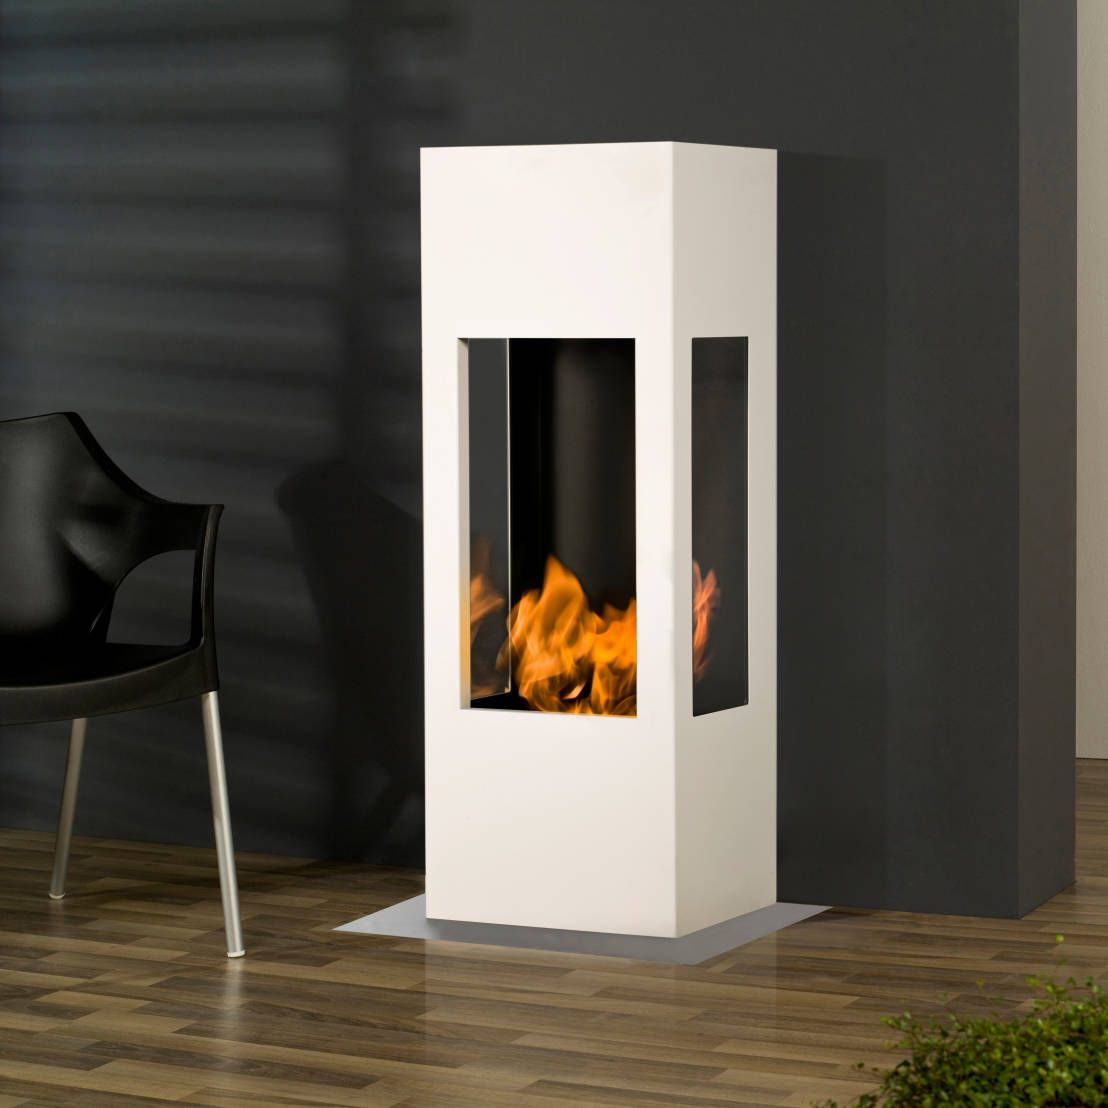 Fireplace Kaminofen Rondale Kaminofen Fireplace Spartherm Varia B Fdh Kaminofen Wood